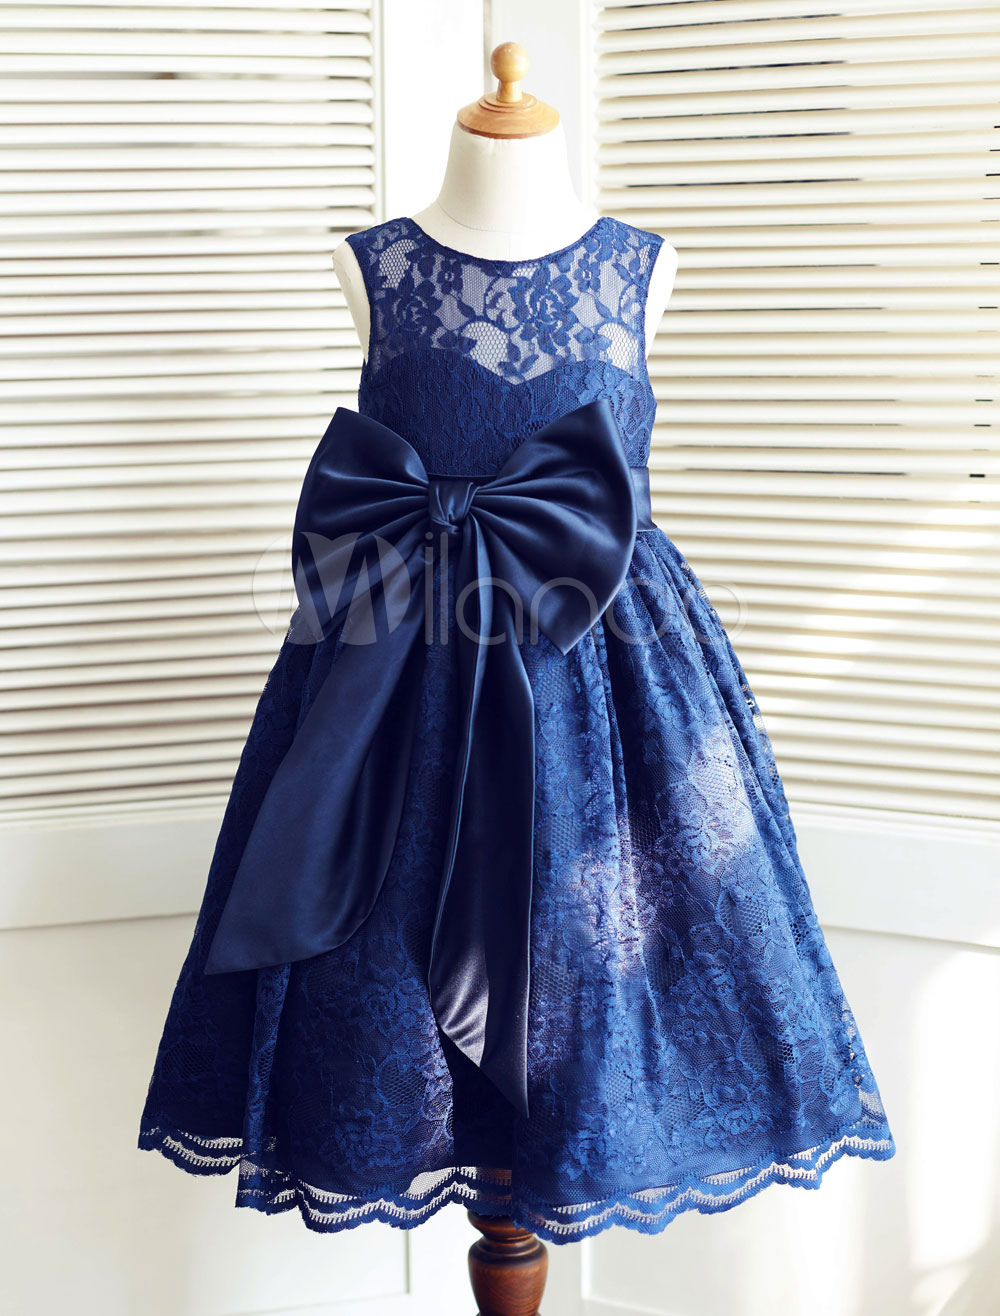 Lace Flower Girl Dress Ribbon Big Bow Illusion Neckline Ankle-Length Toddler's Pageant Dress